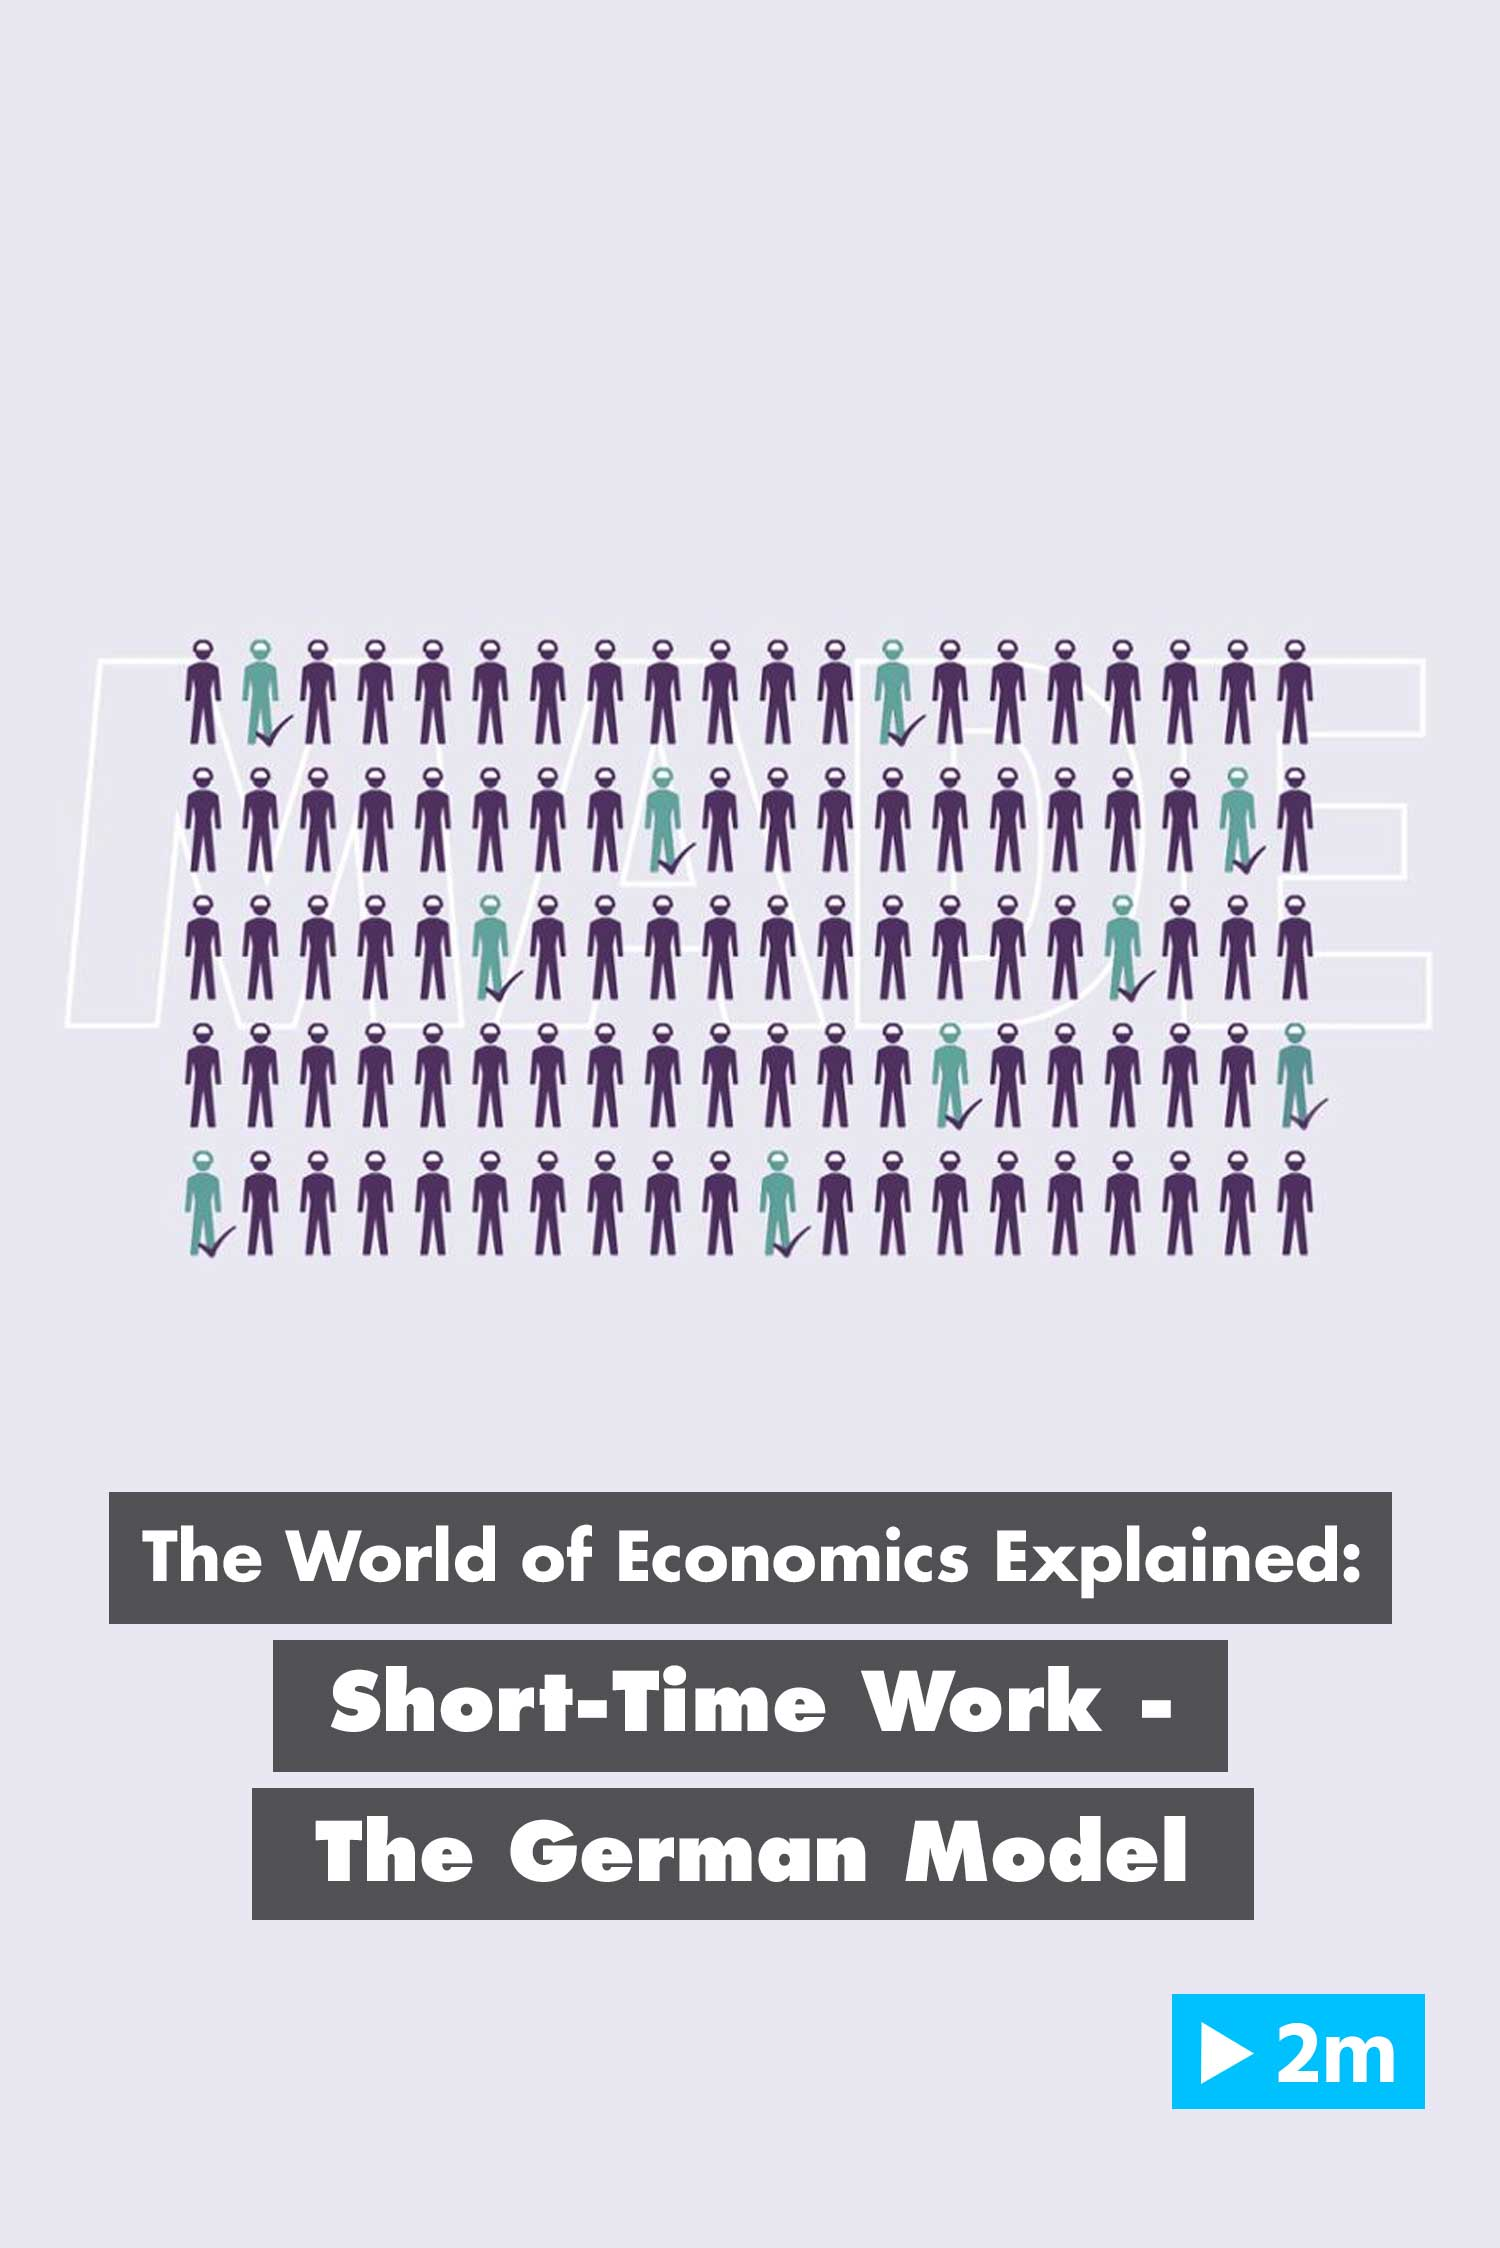 The World of Economics Explained: Short-Time Work - The German Model